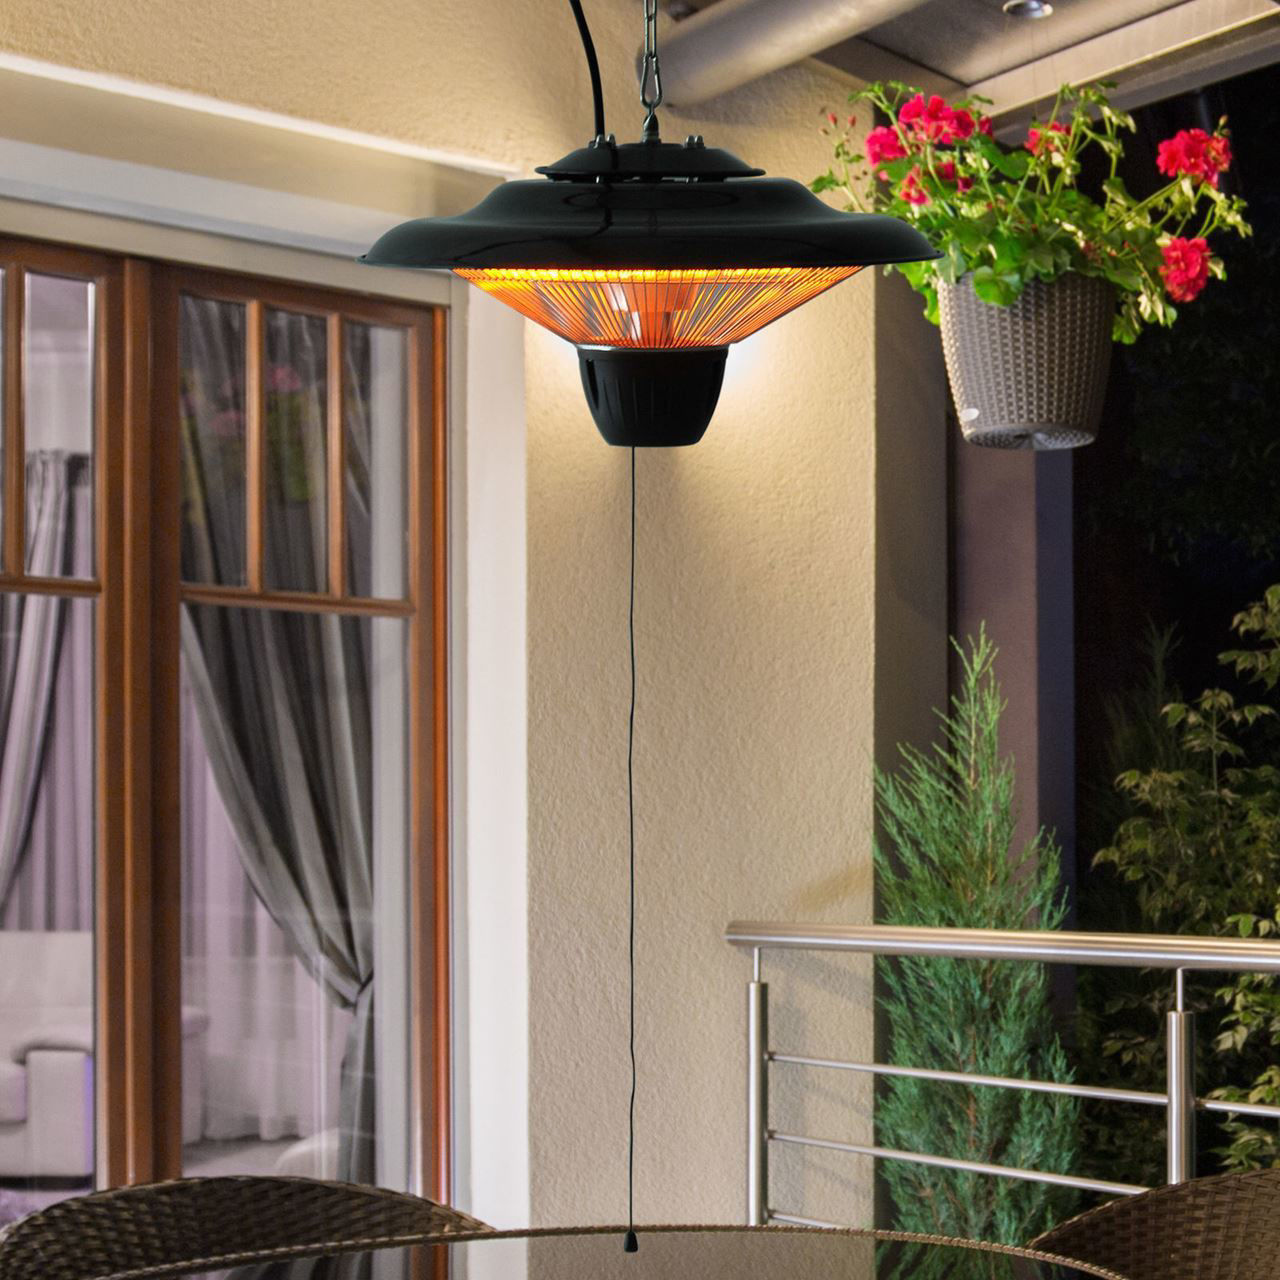 Picture of Outdoor Patio Heater Ceiling - 1500W